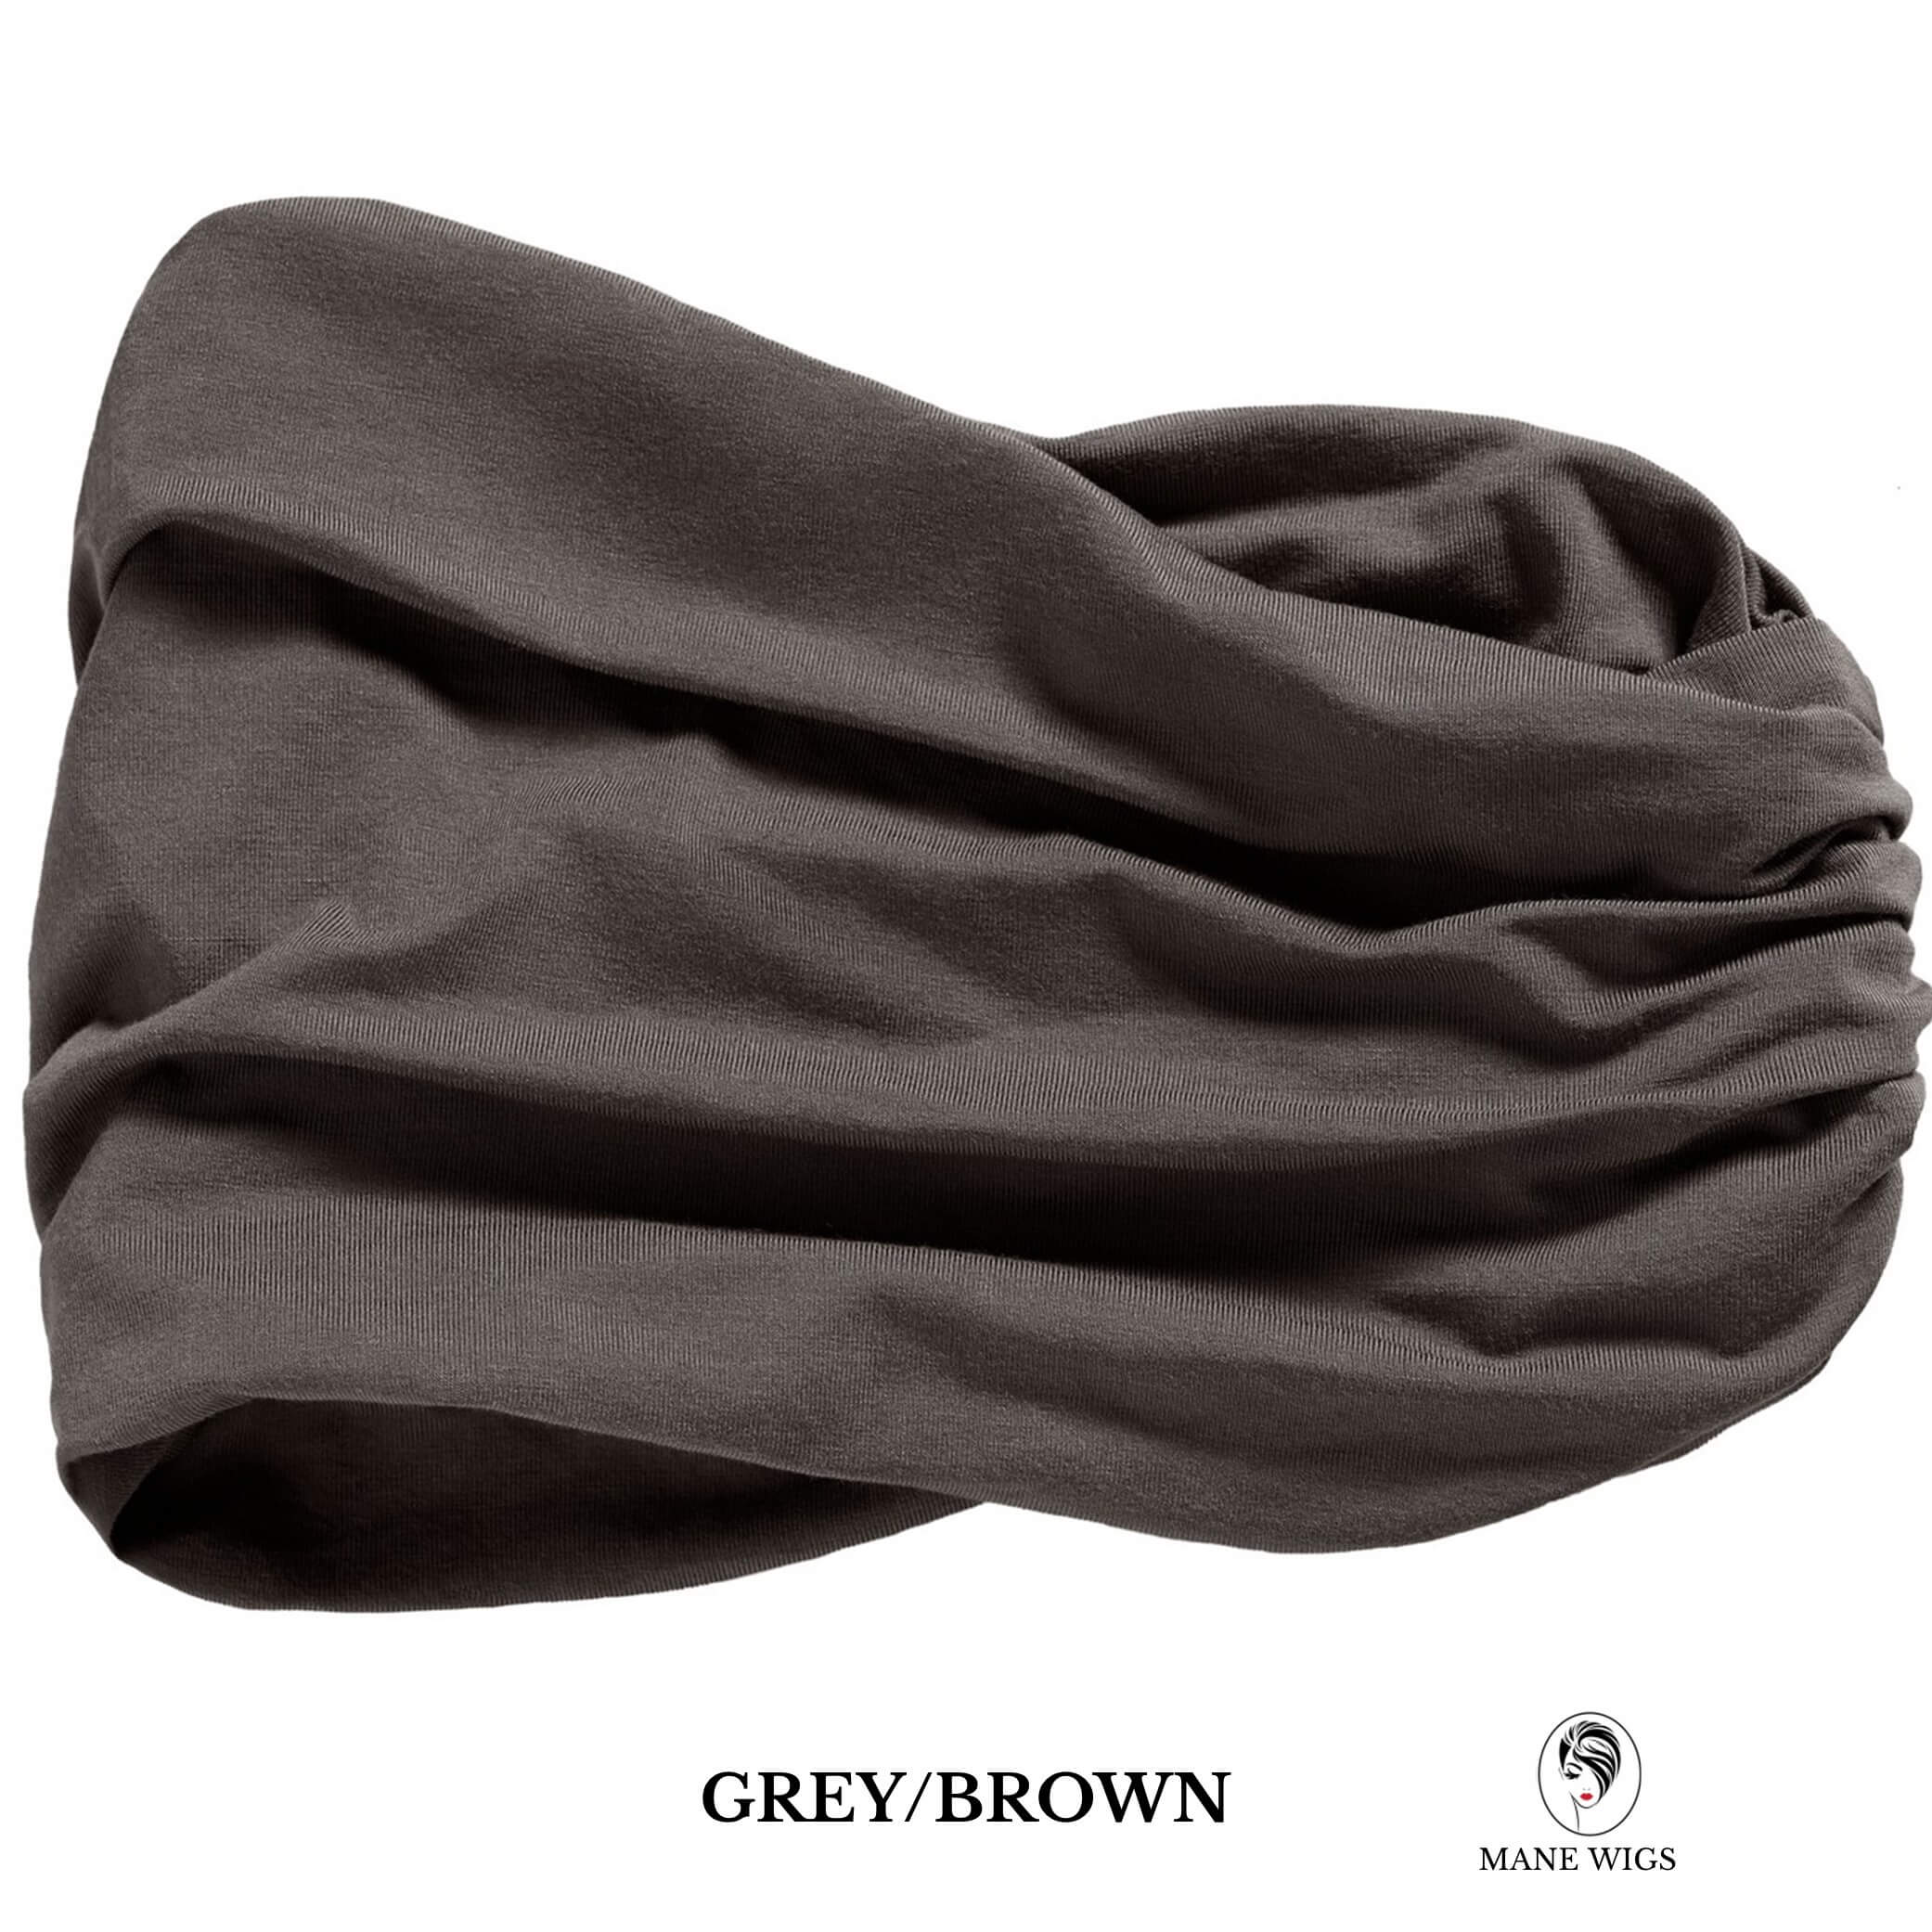 Christine Headwear Chitta Headband 253-Grey/Brown